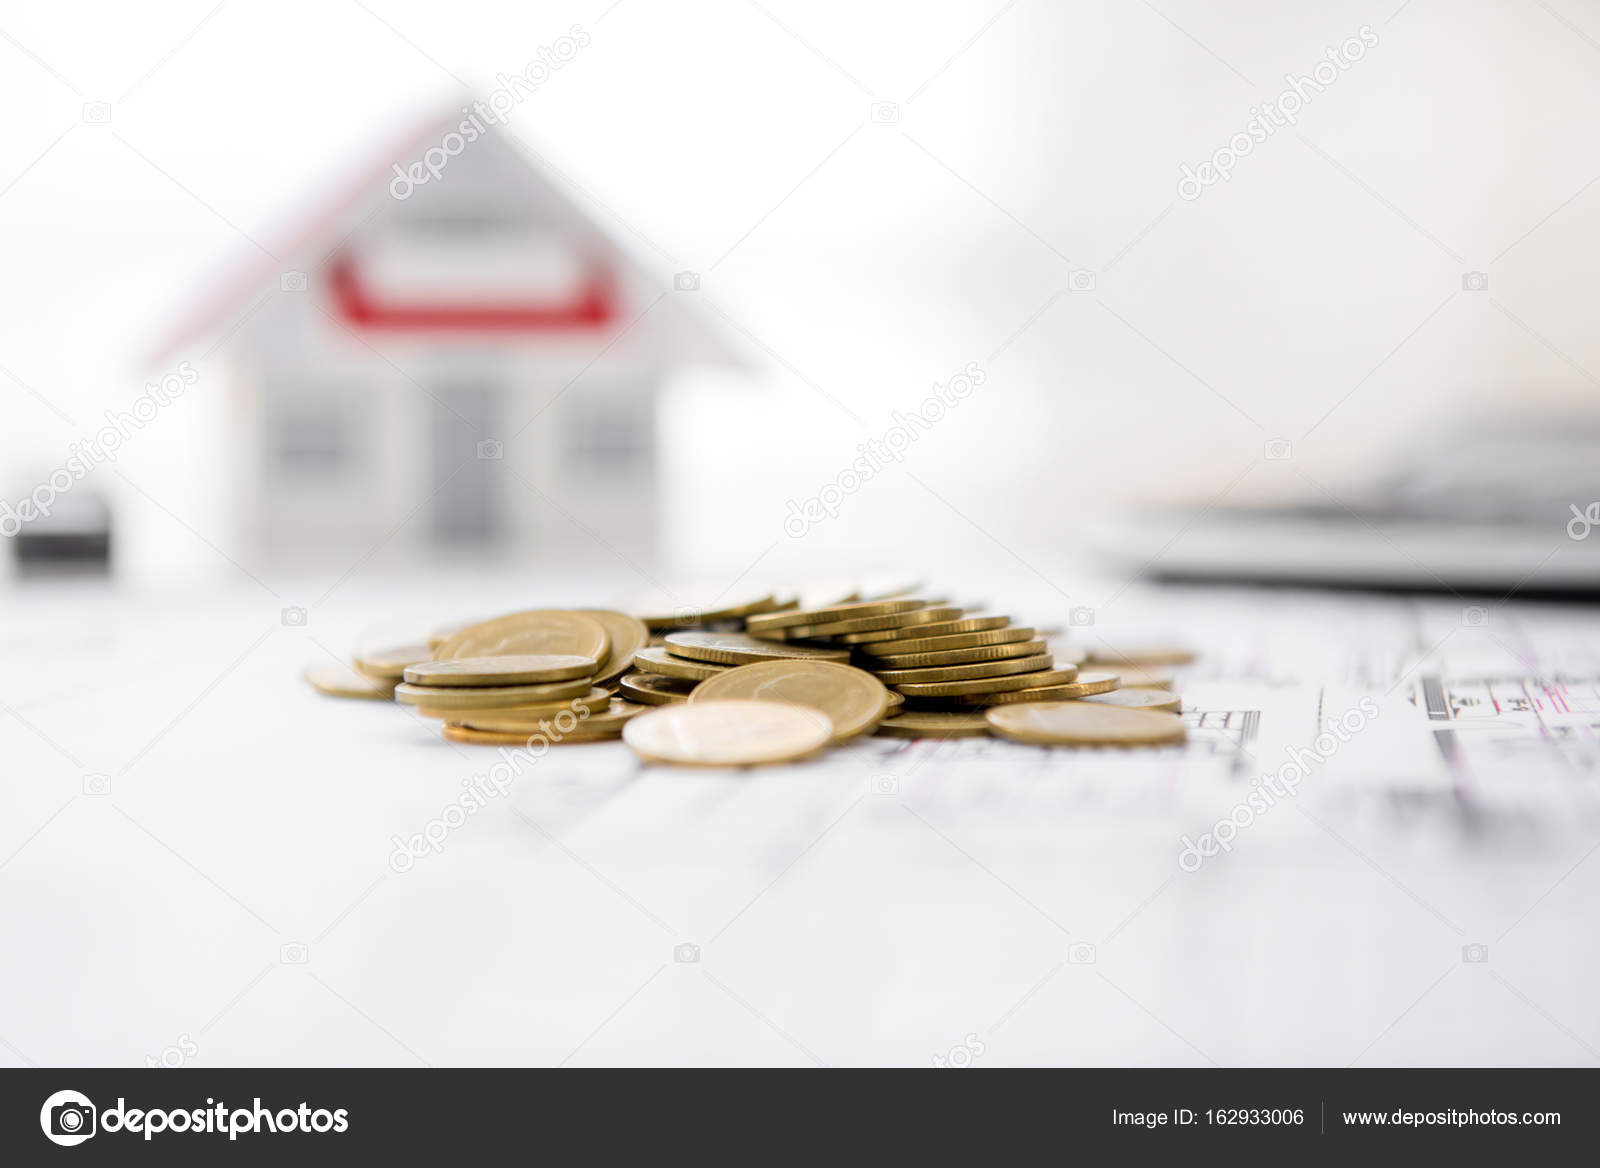 Money on blueprint paper with blurred house model in background money on blueprint paper with blurred house model in background real estate loan and financial concepts photo by kritchanut malvernweather